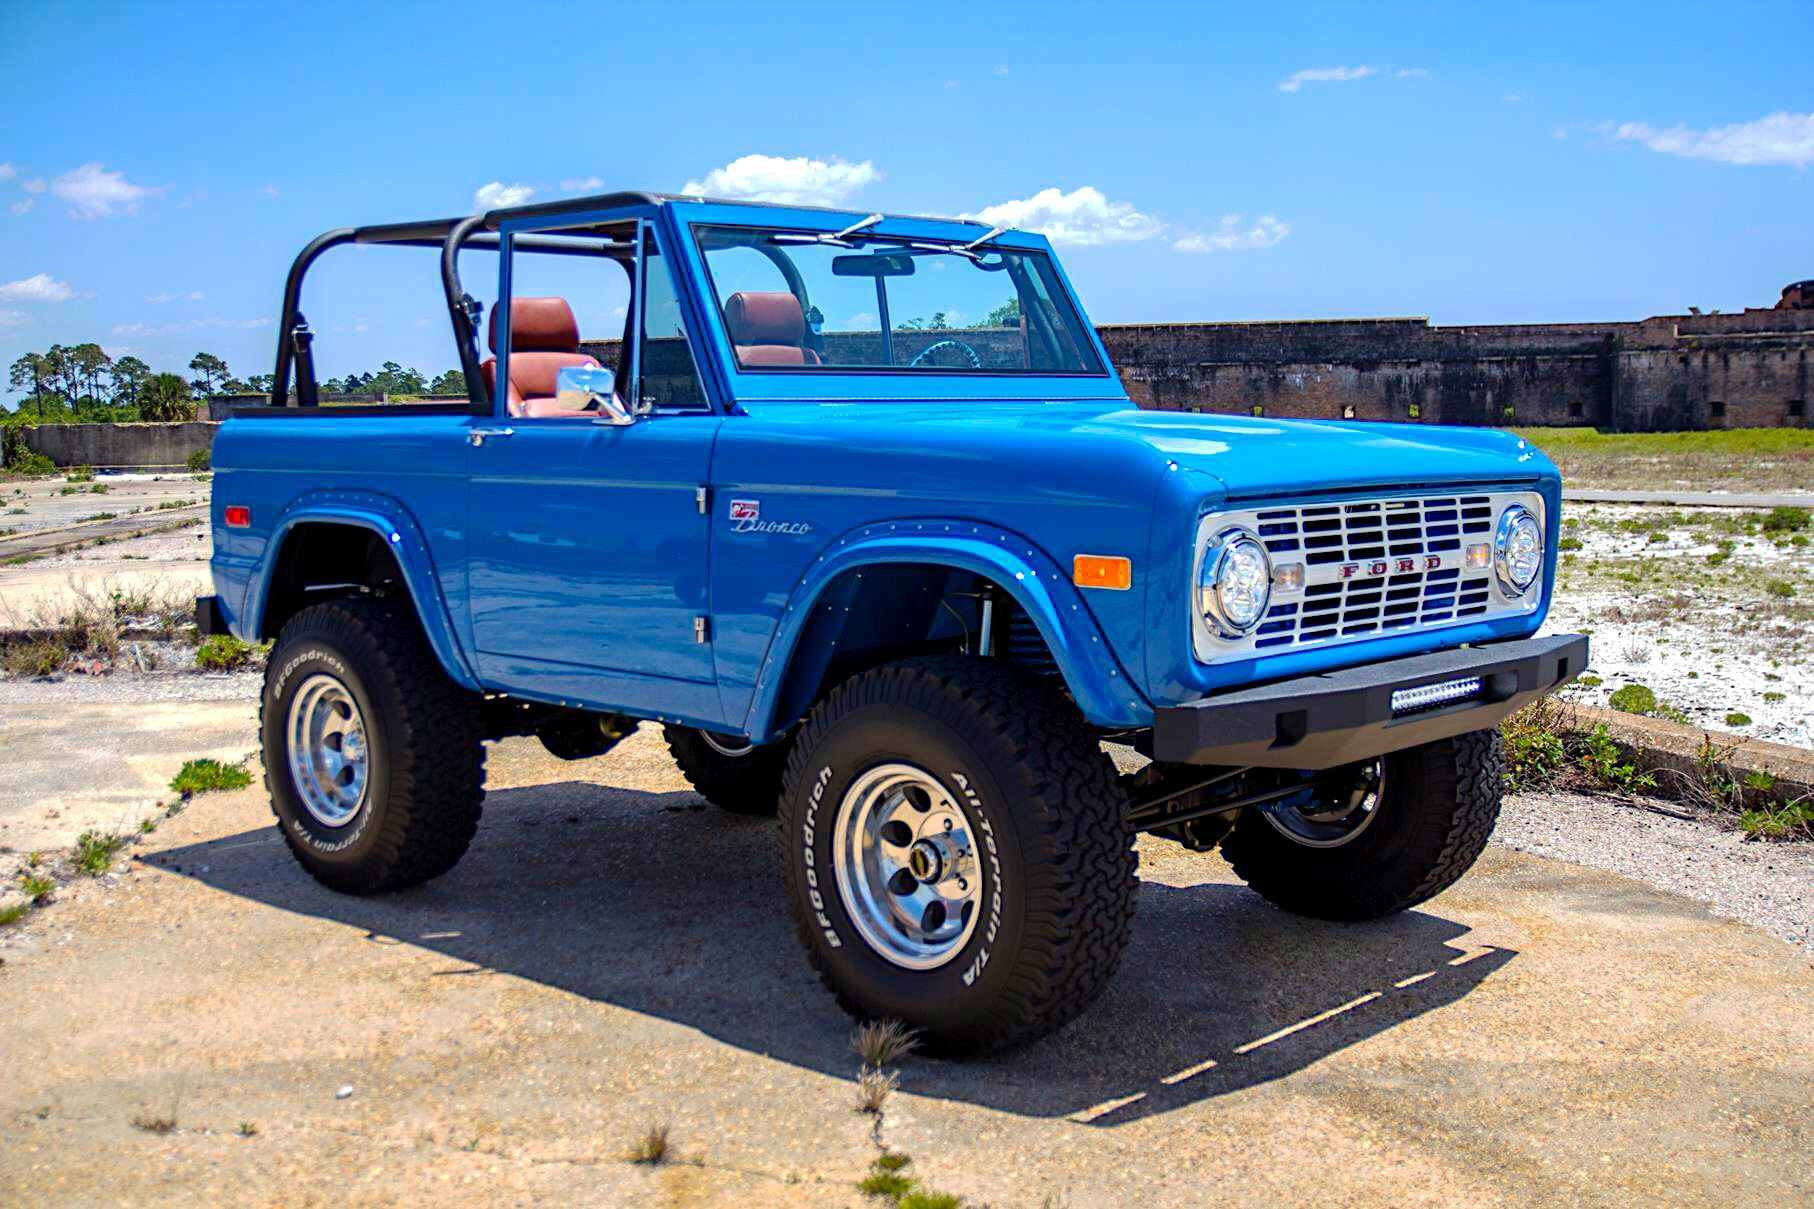 Diesel ford bronco for sale - 1976 Classic Ford Bronco For Sale